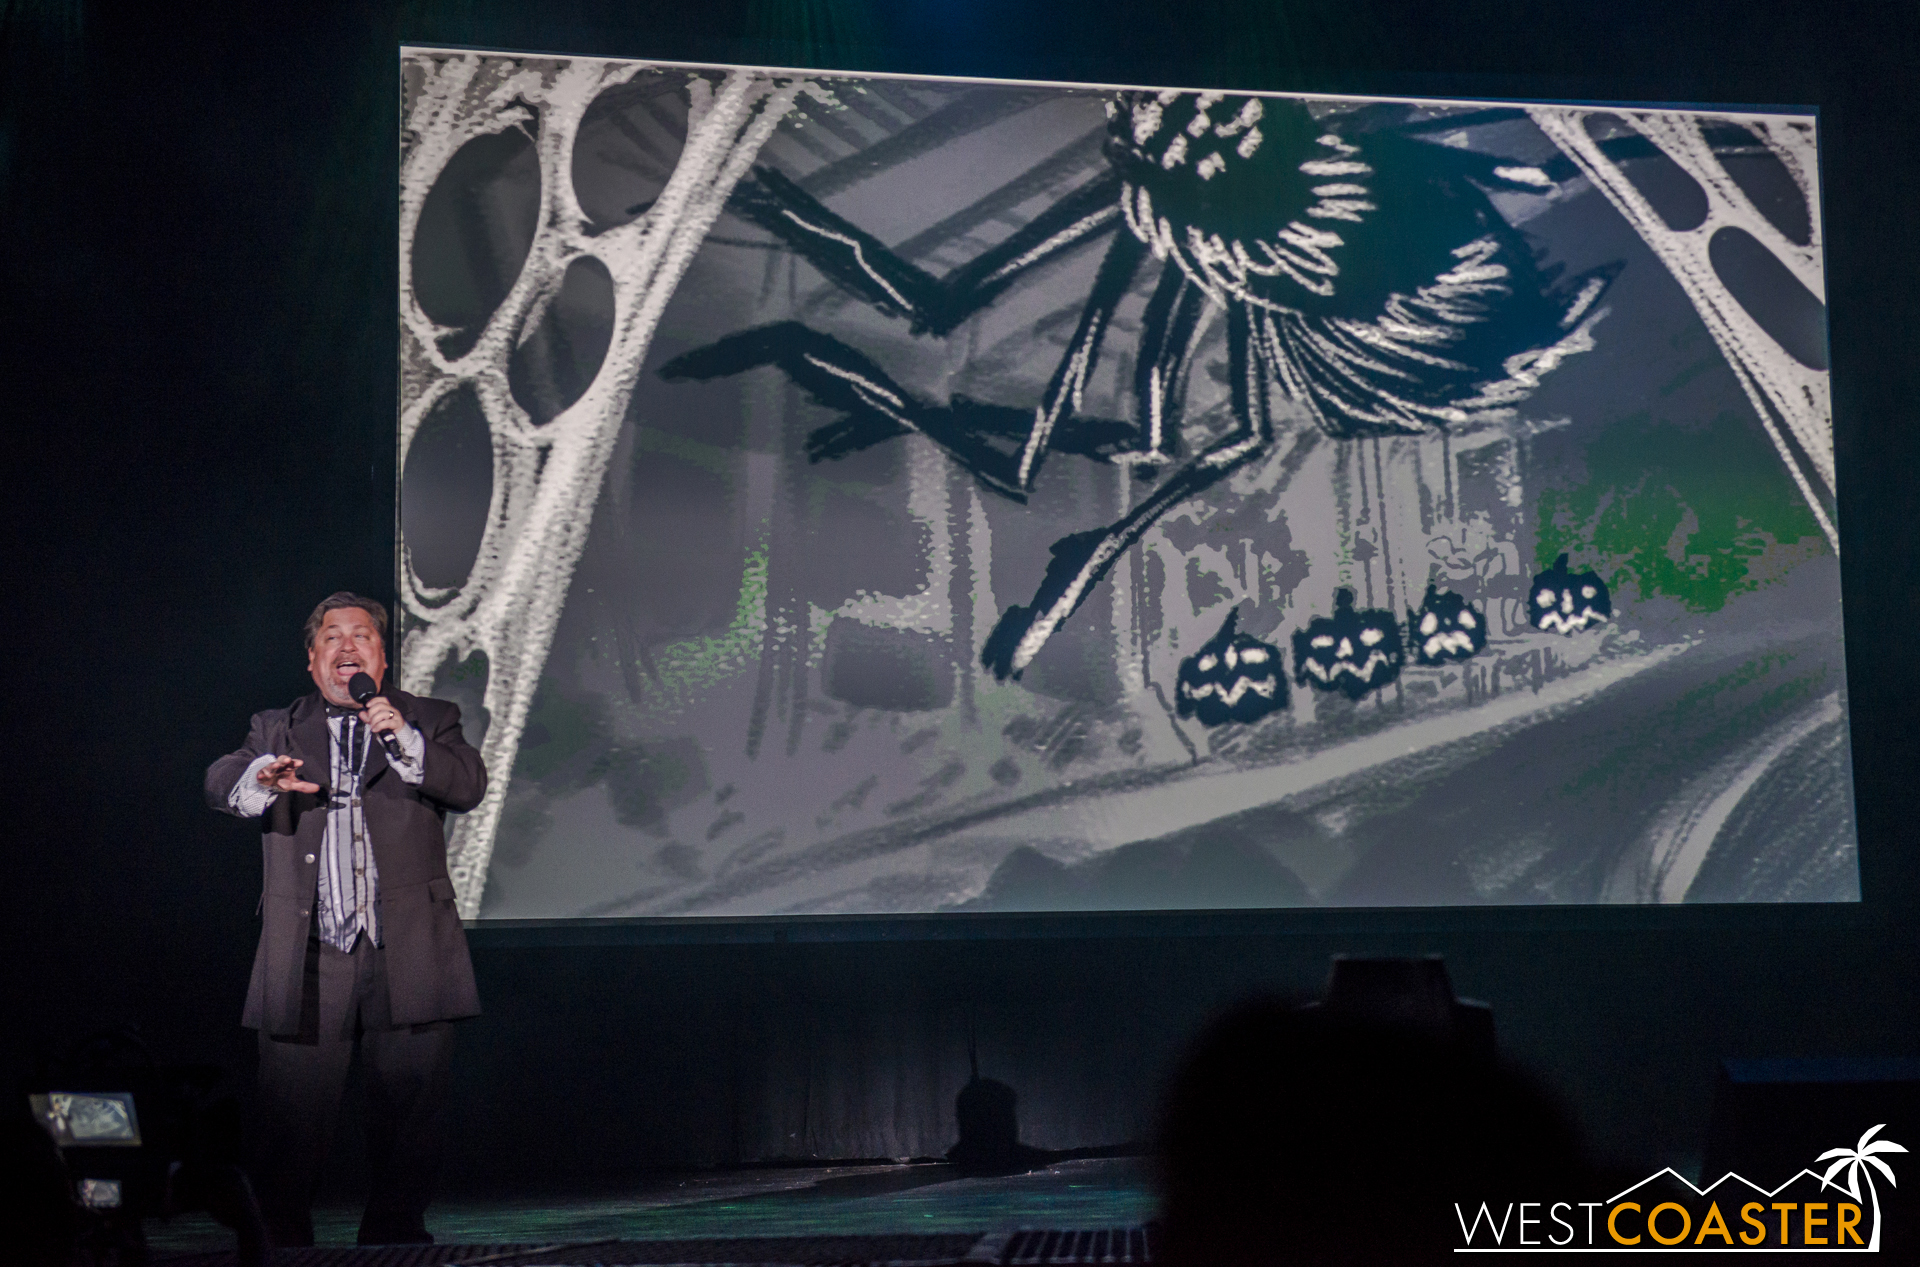 This means no live scare actors to startle riders, which is probably better anyway, since safety concerns limit how many monsters could be stationed throughout the ride and what they could do.  UPDATE: Per HorrorBuzz, Jon Cooke confirmed live actors at night but not during the day.